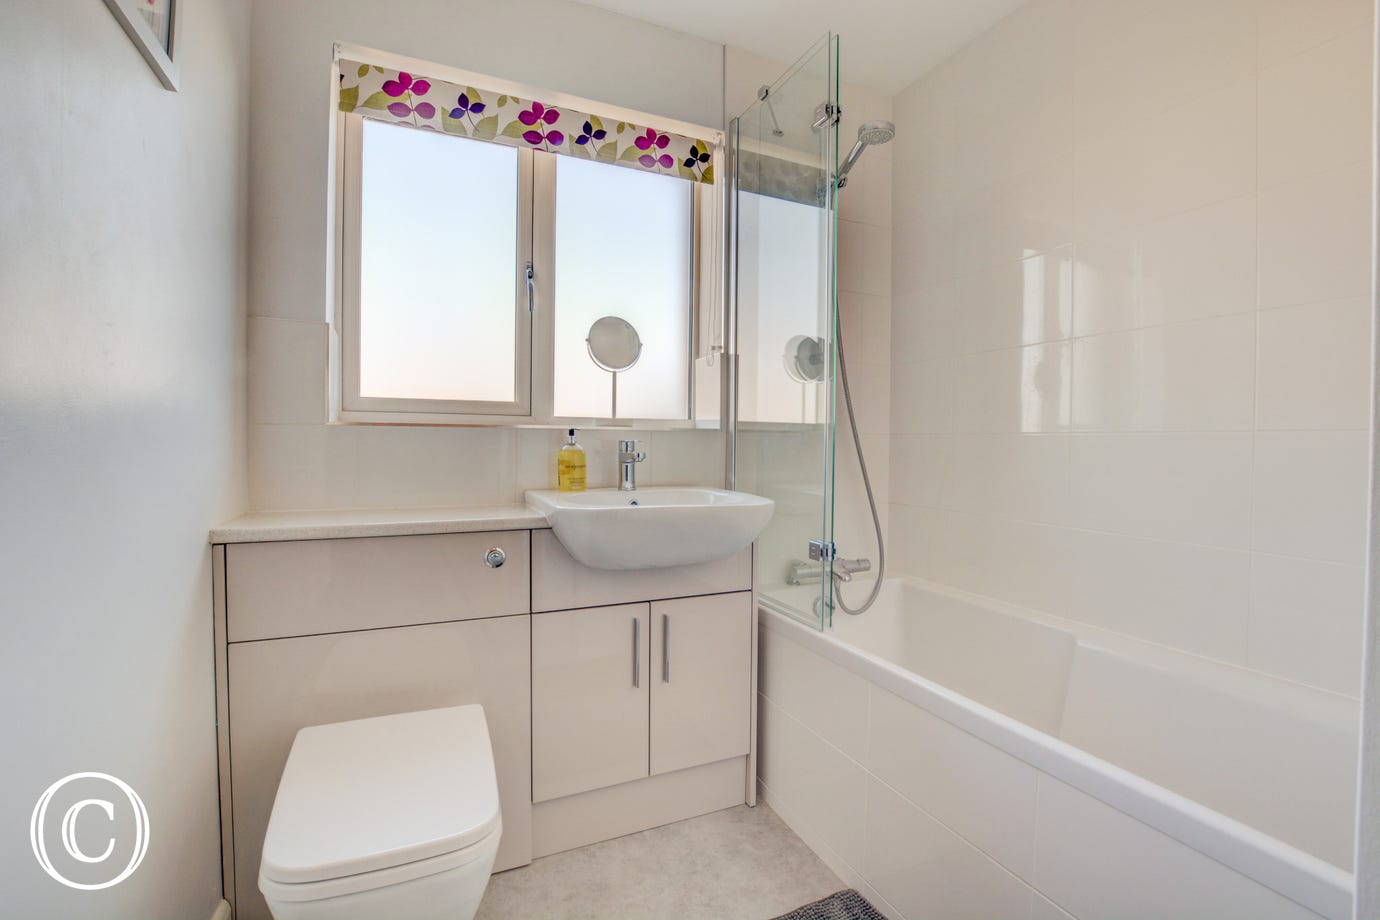 Bathroom with overhead shower on bath